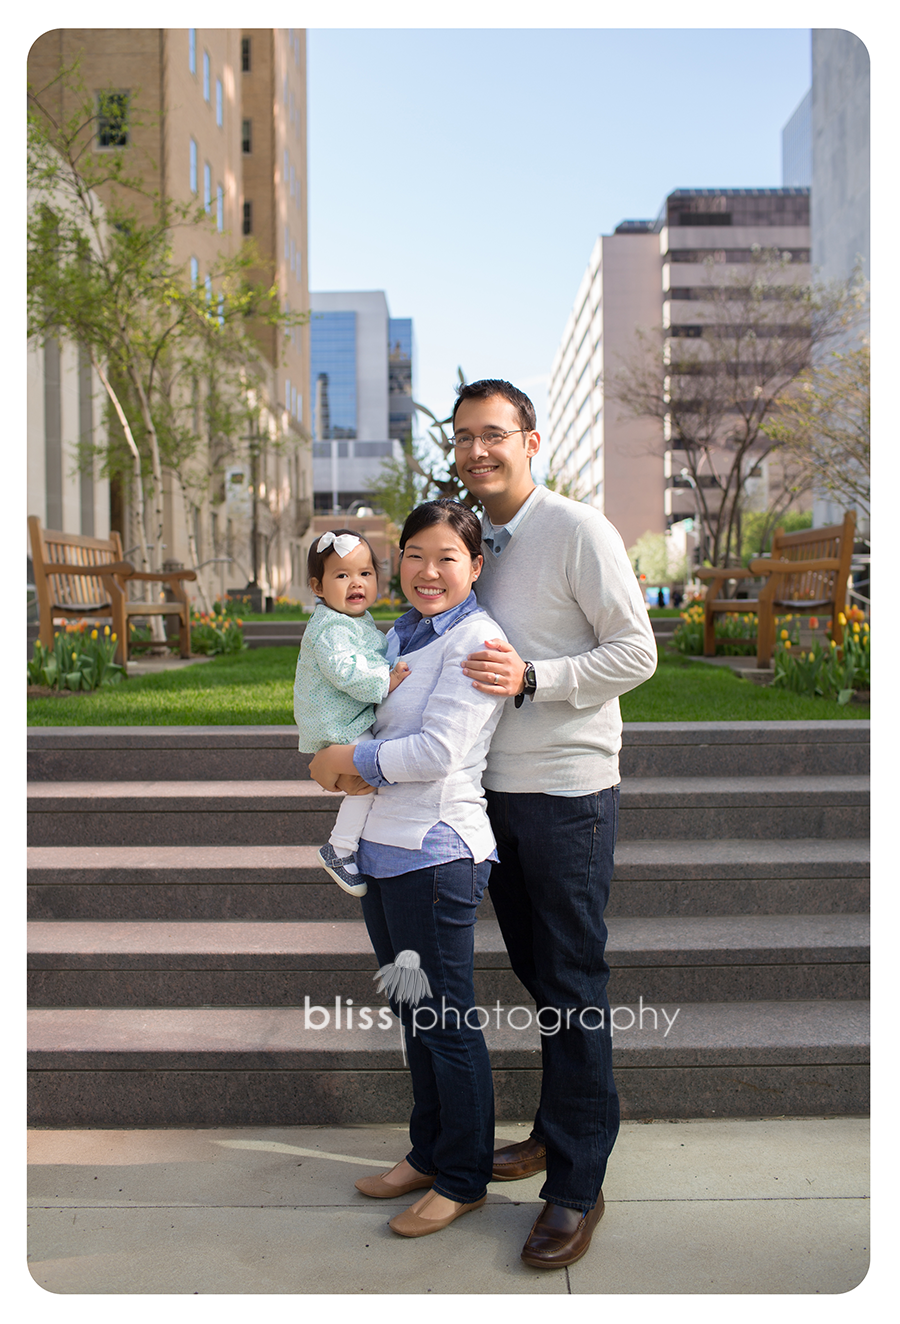 mayo clinic bliss photography -9905